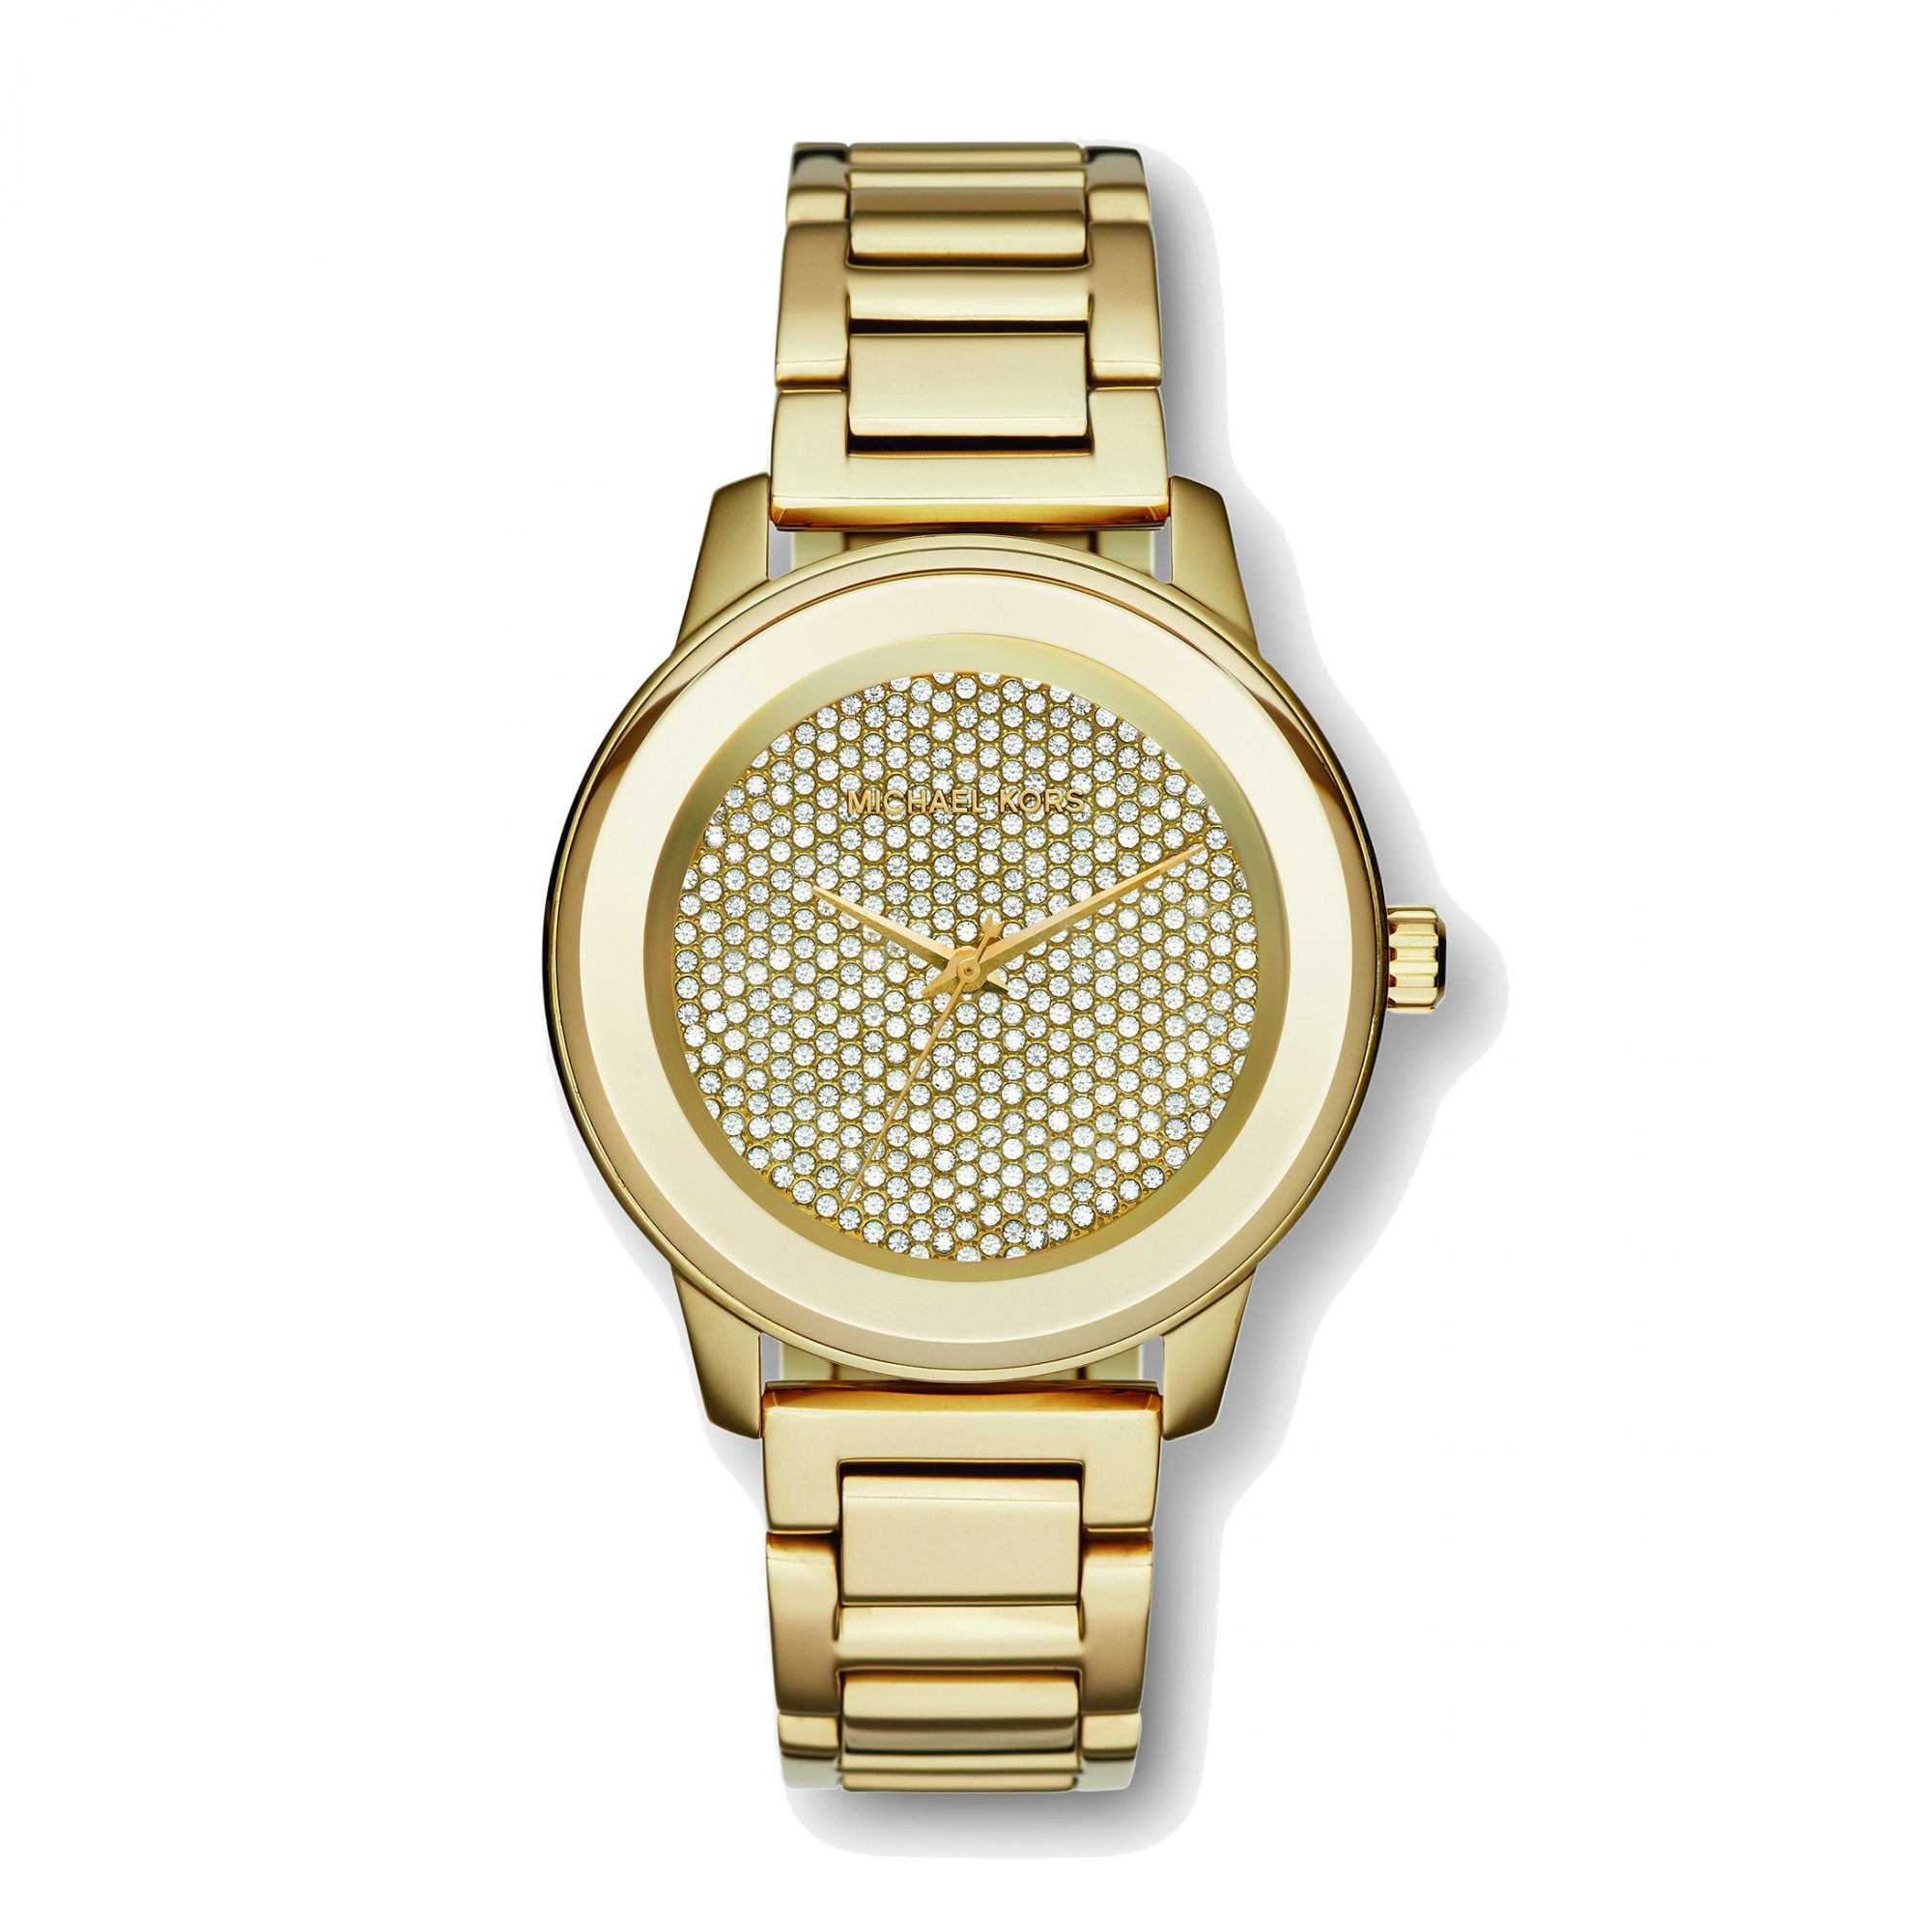 MICHAEL KORS PAVé GOLD-TONE WATCH